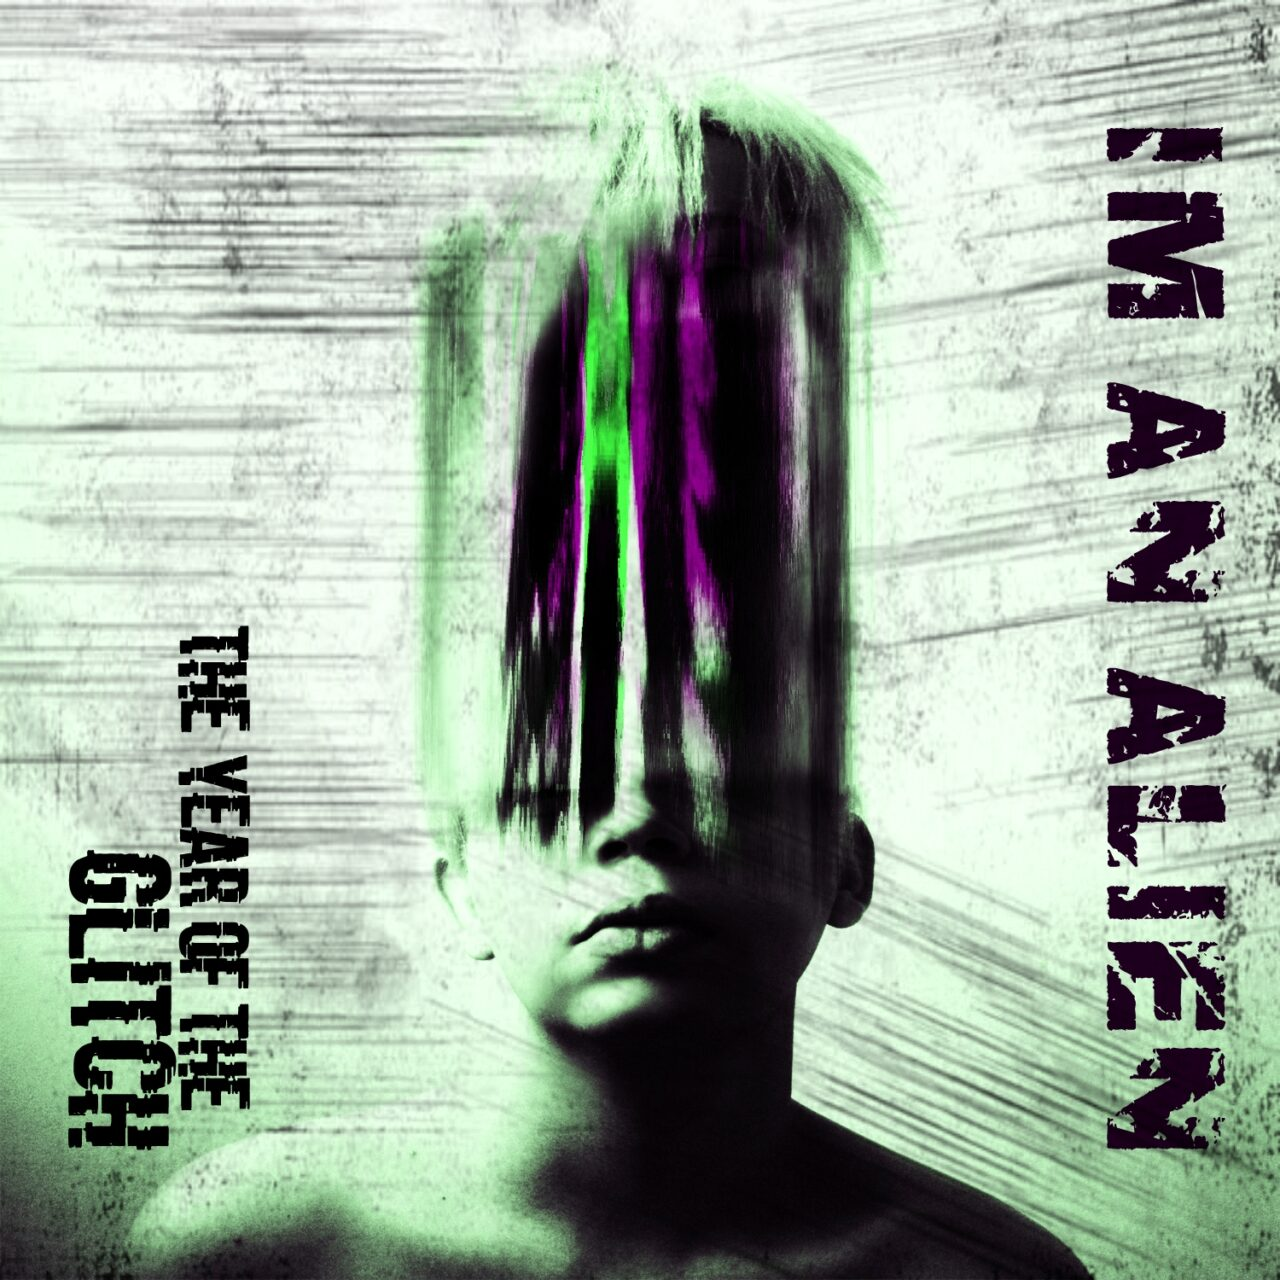 https://www.firstangelmedia.com/wp-content/uploads/2020/11/1604618626517_Im-An-Alien-The-Year-Of-The-Glitch-album-cover-1280x1280.jpg